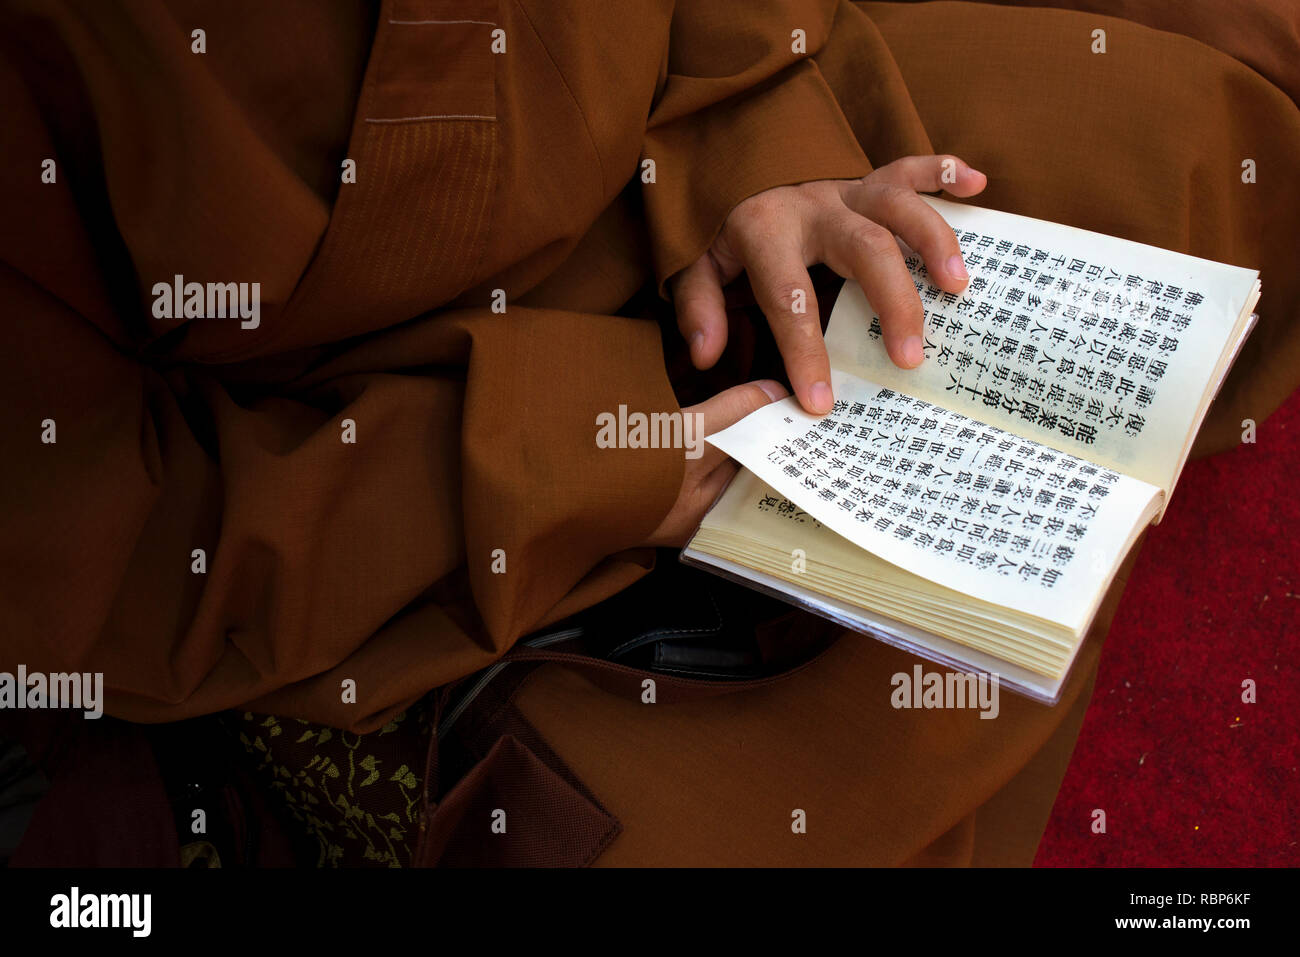 A Buddhist monk reads from religious text at Bodh Gya during Buddha Purnima celebrations. - Stock Image